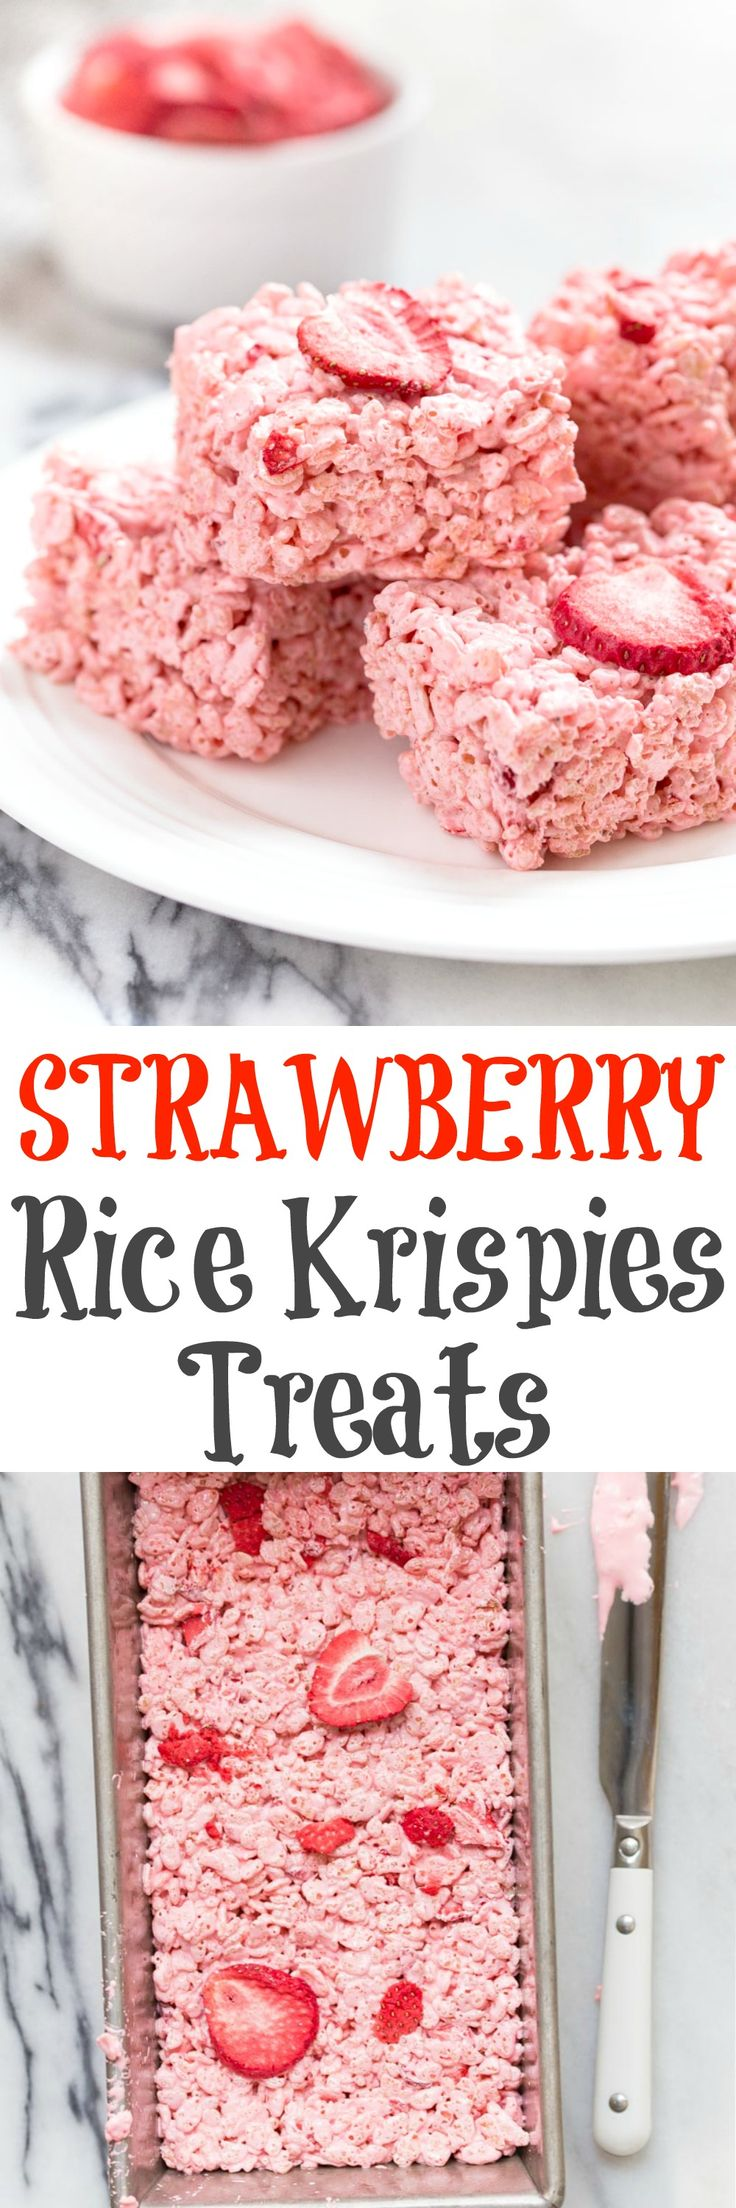 A small batch of rice crispy treats for two--made in a bread loaf pan. This one is flavored with strawberry marshmallow fluff and dried strawberries! @DessertForTwo